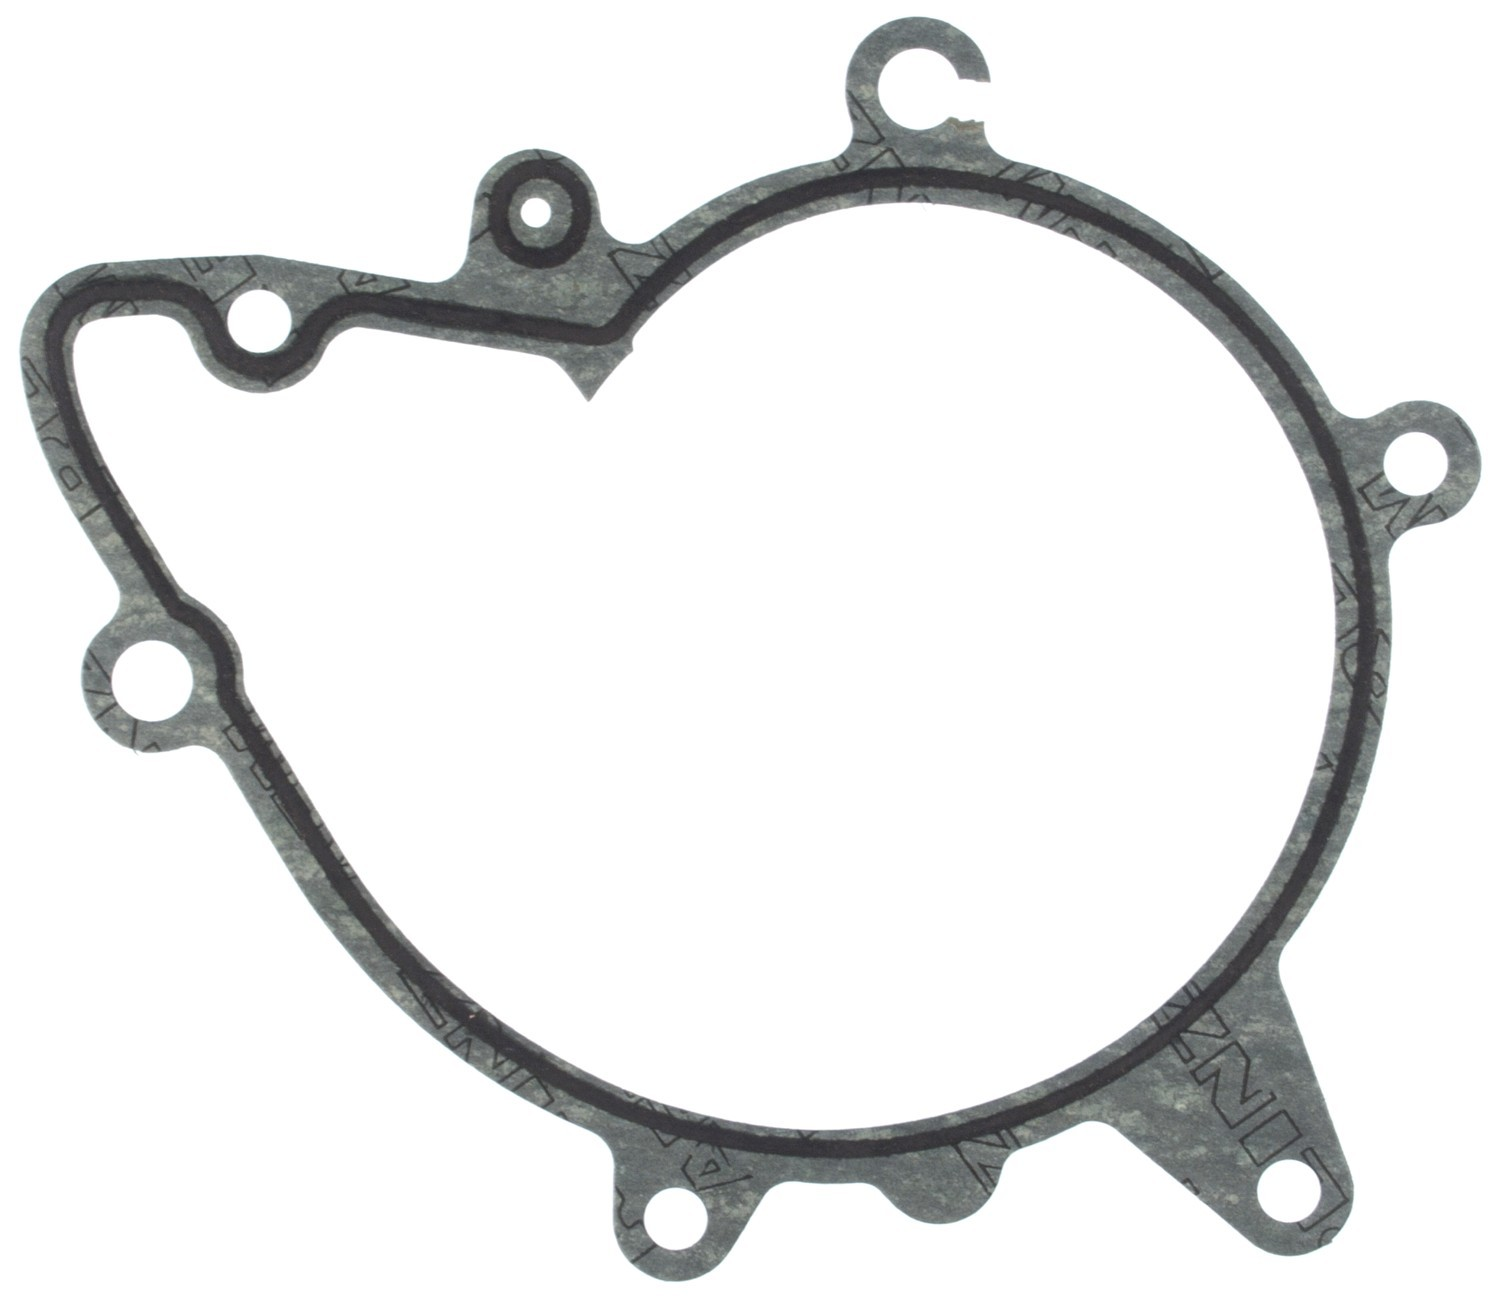 Engine Water Pump Gasket fits 1993-2003 BMW 540i 740iL X5